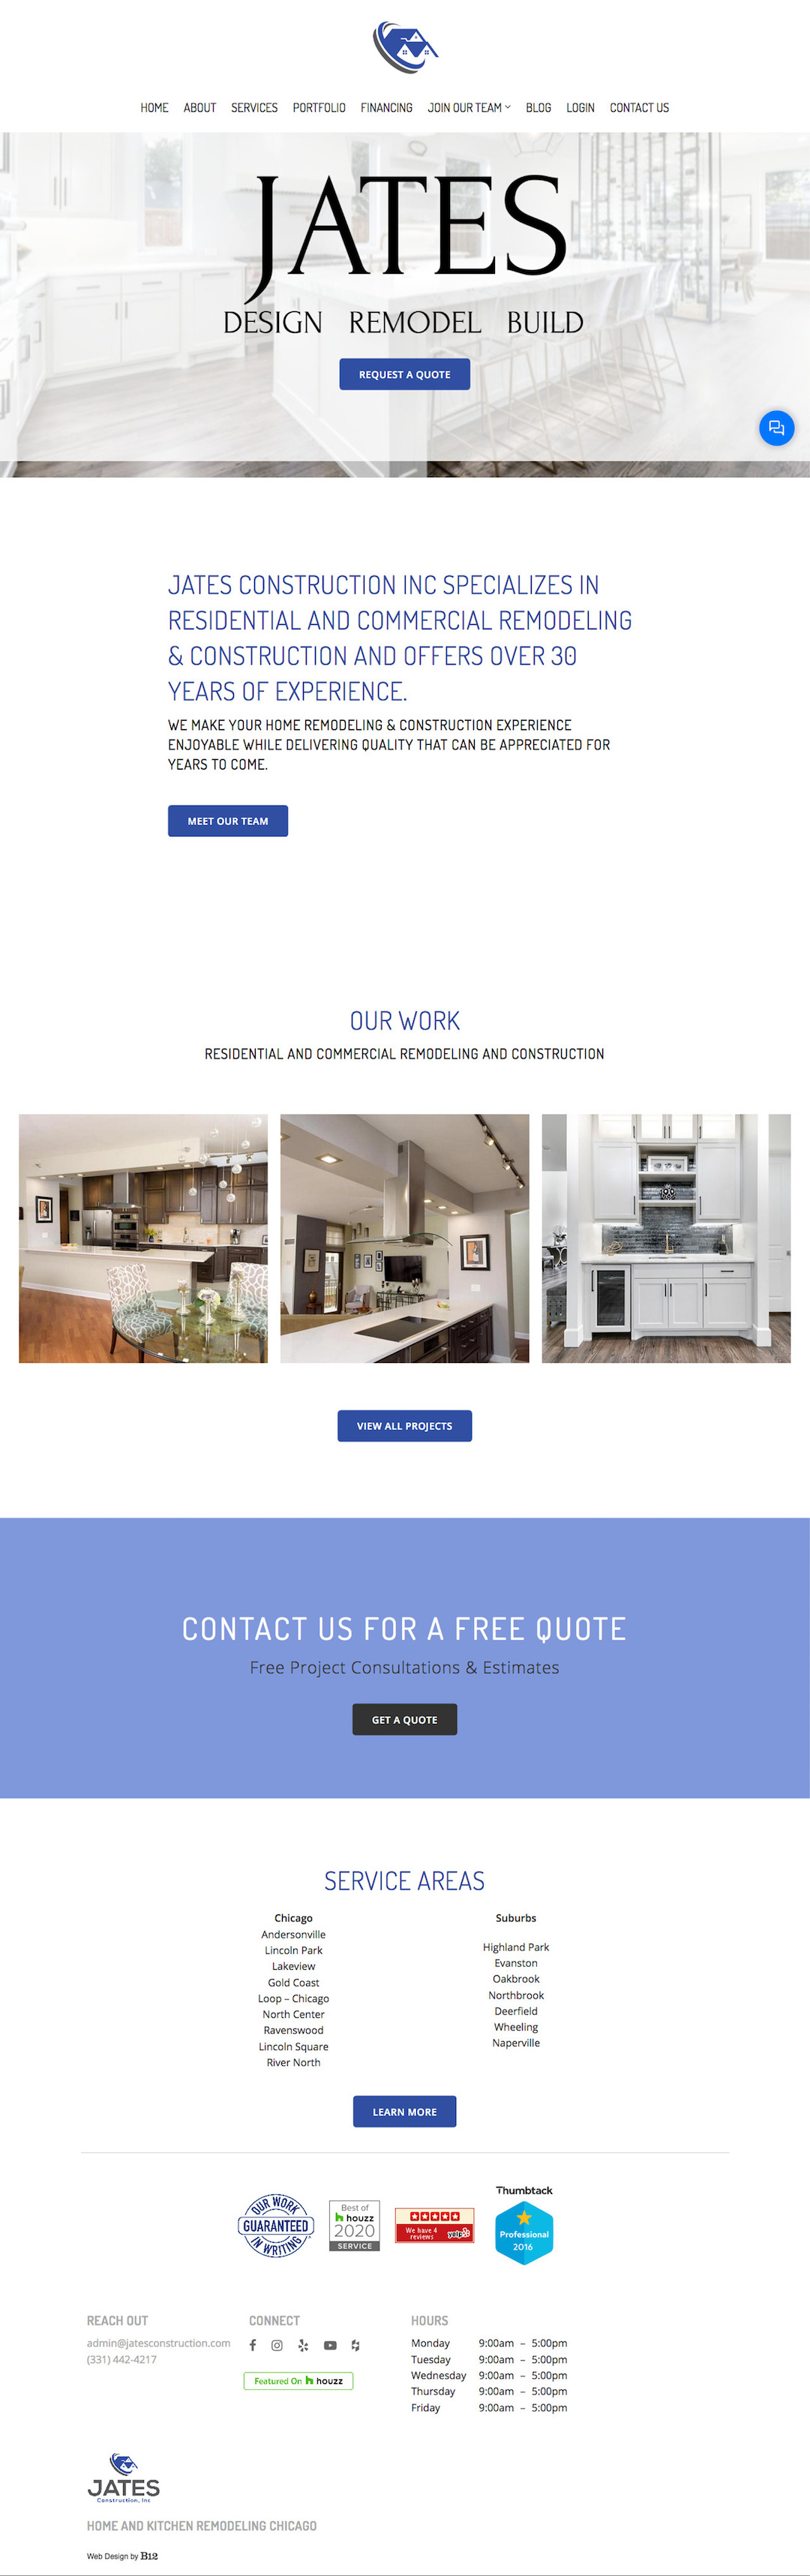 JATES Remodeling & Construction